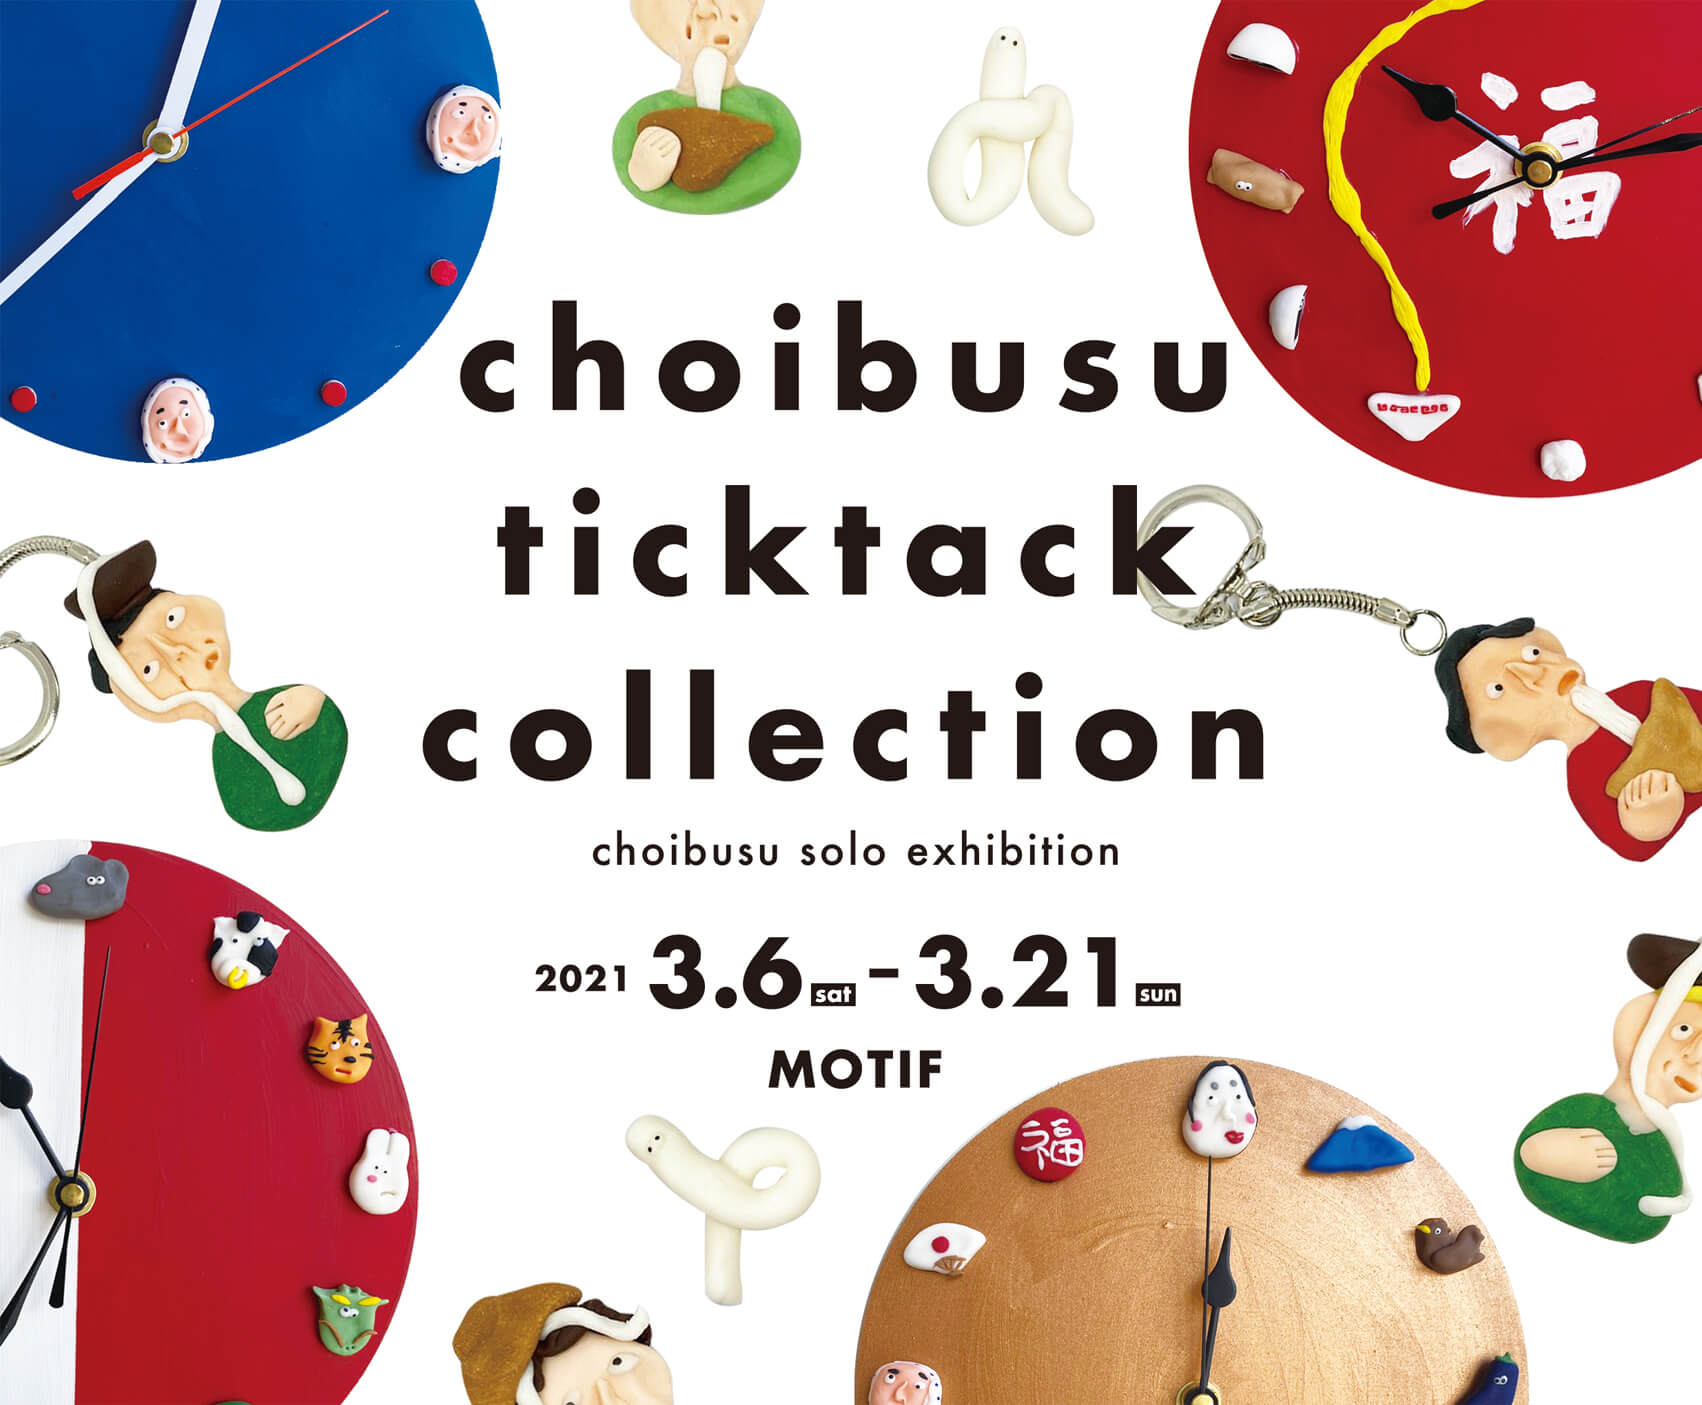 ちょいブス ticktack collection